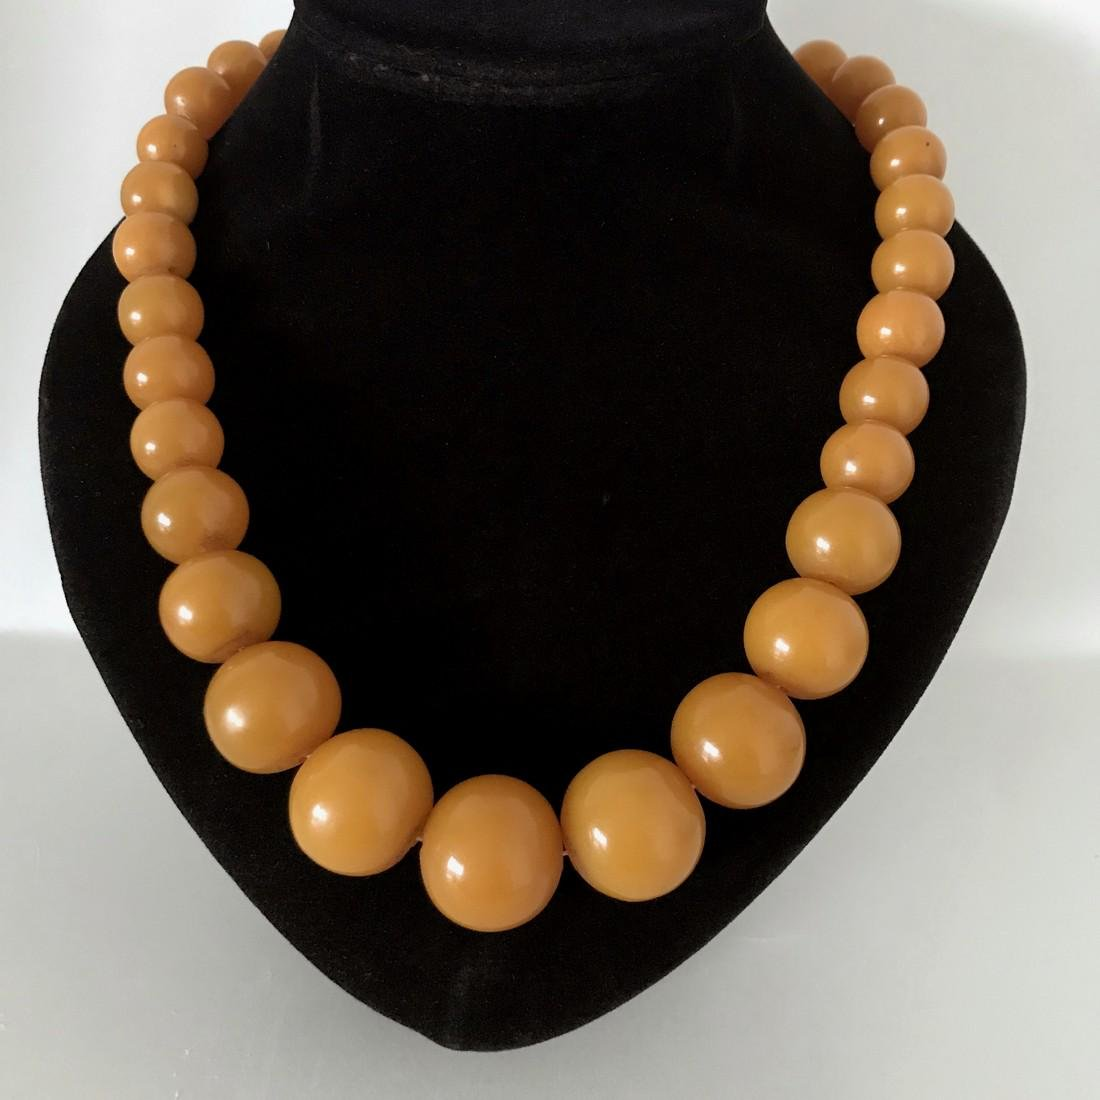 Amazing Vintage Amber Necklace made from Round Amber